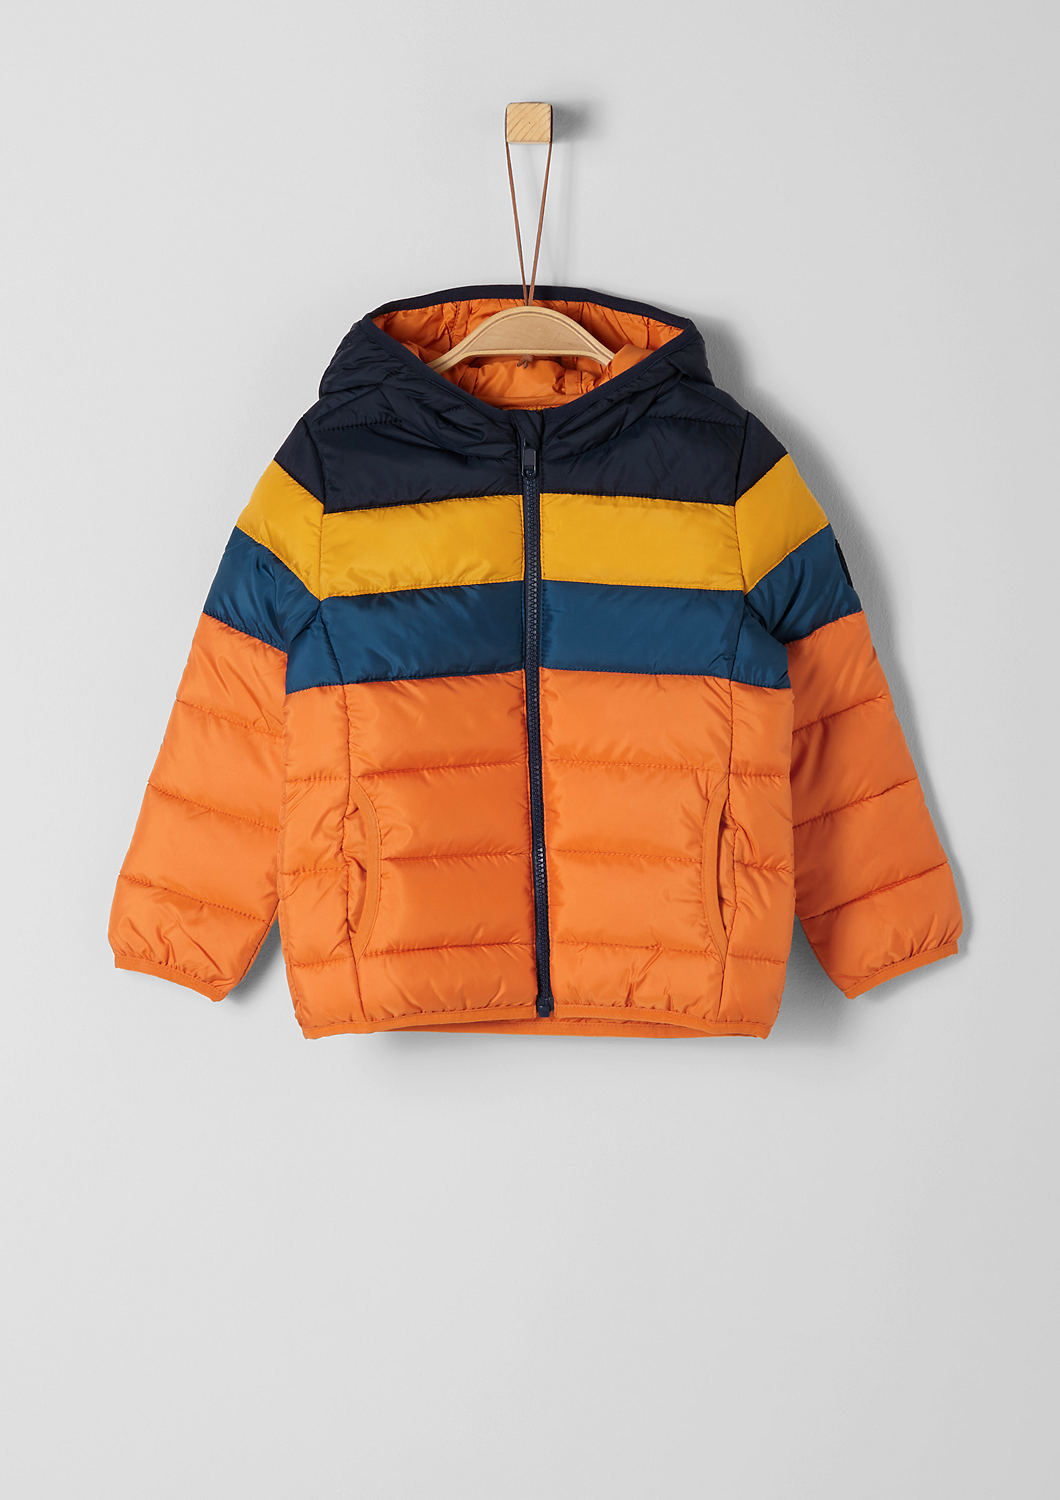 Buy Padded, striped quilted jacket with a hood | s.Oliver shop